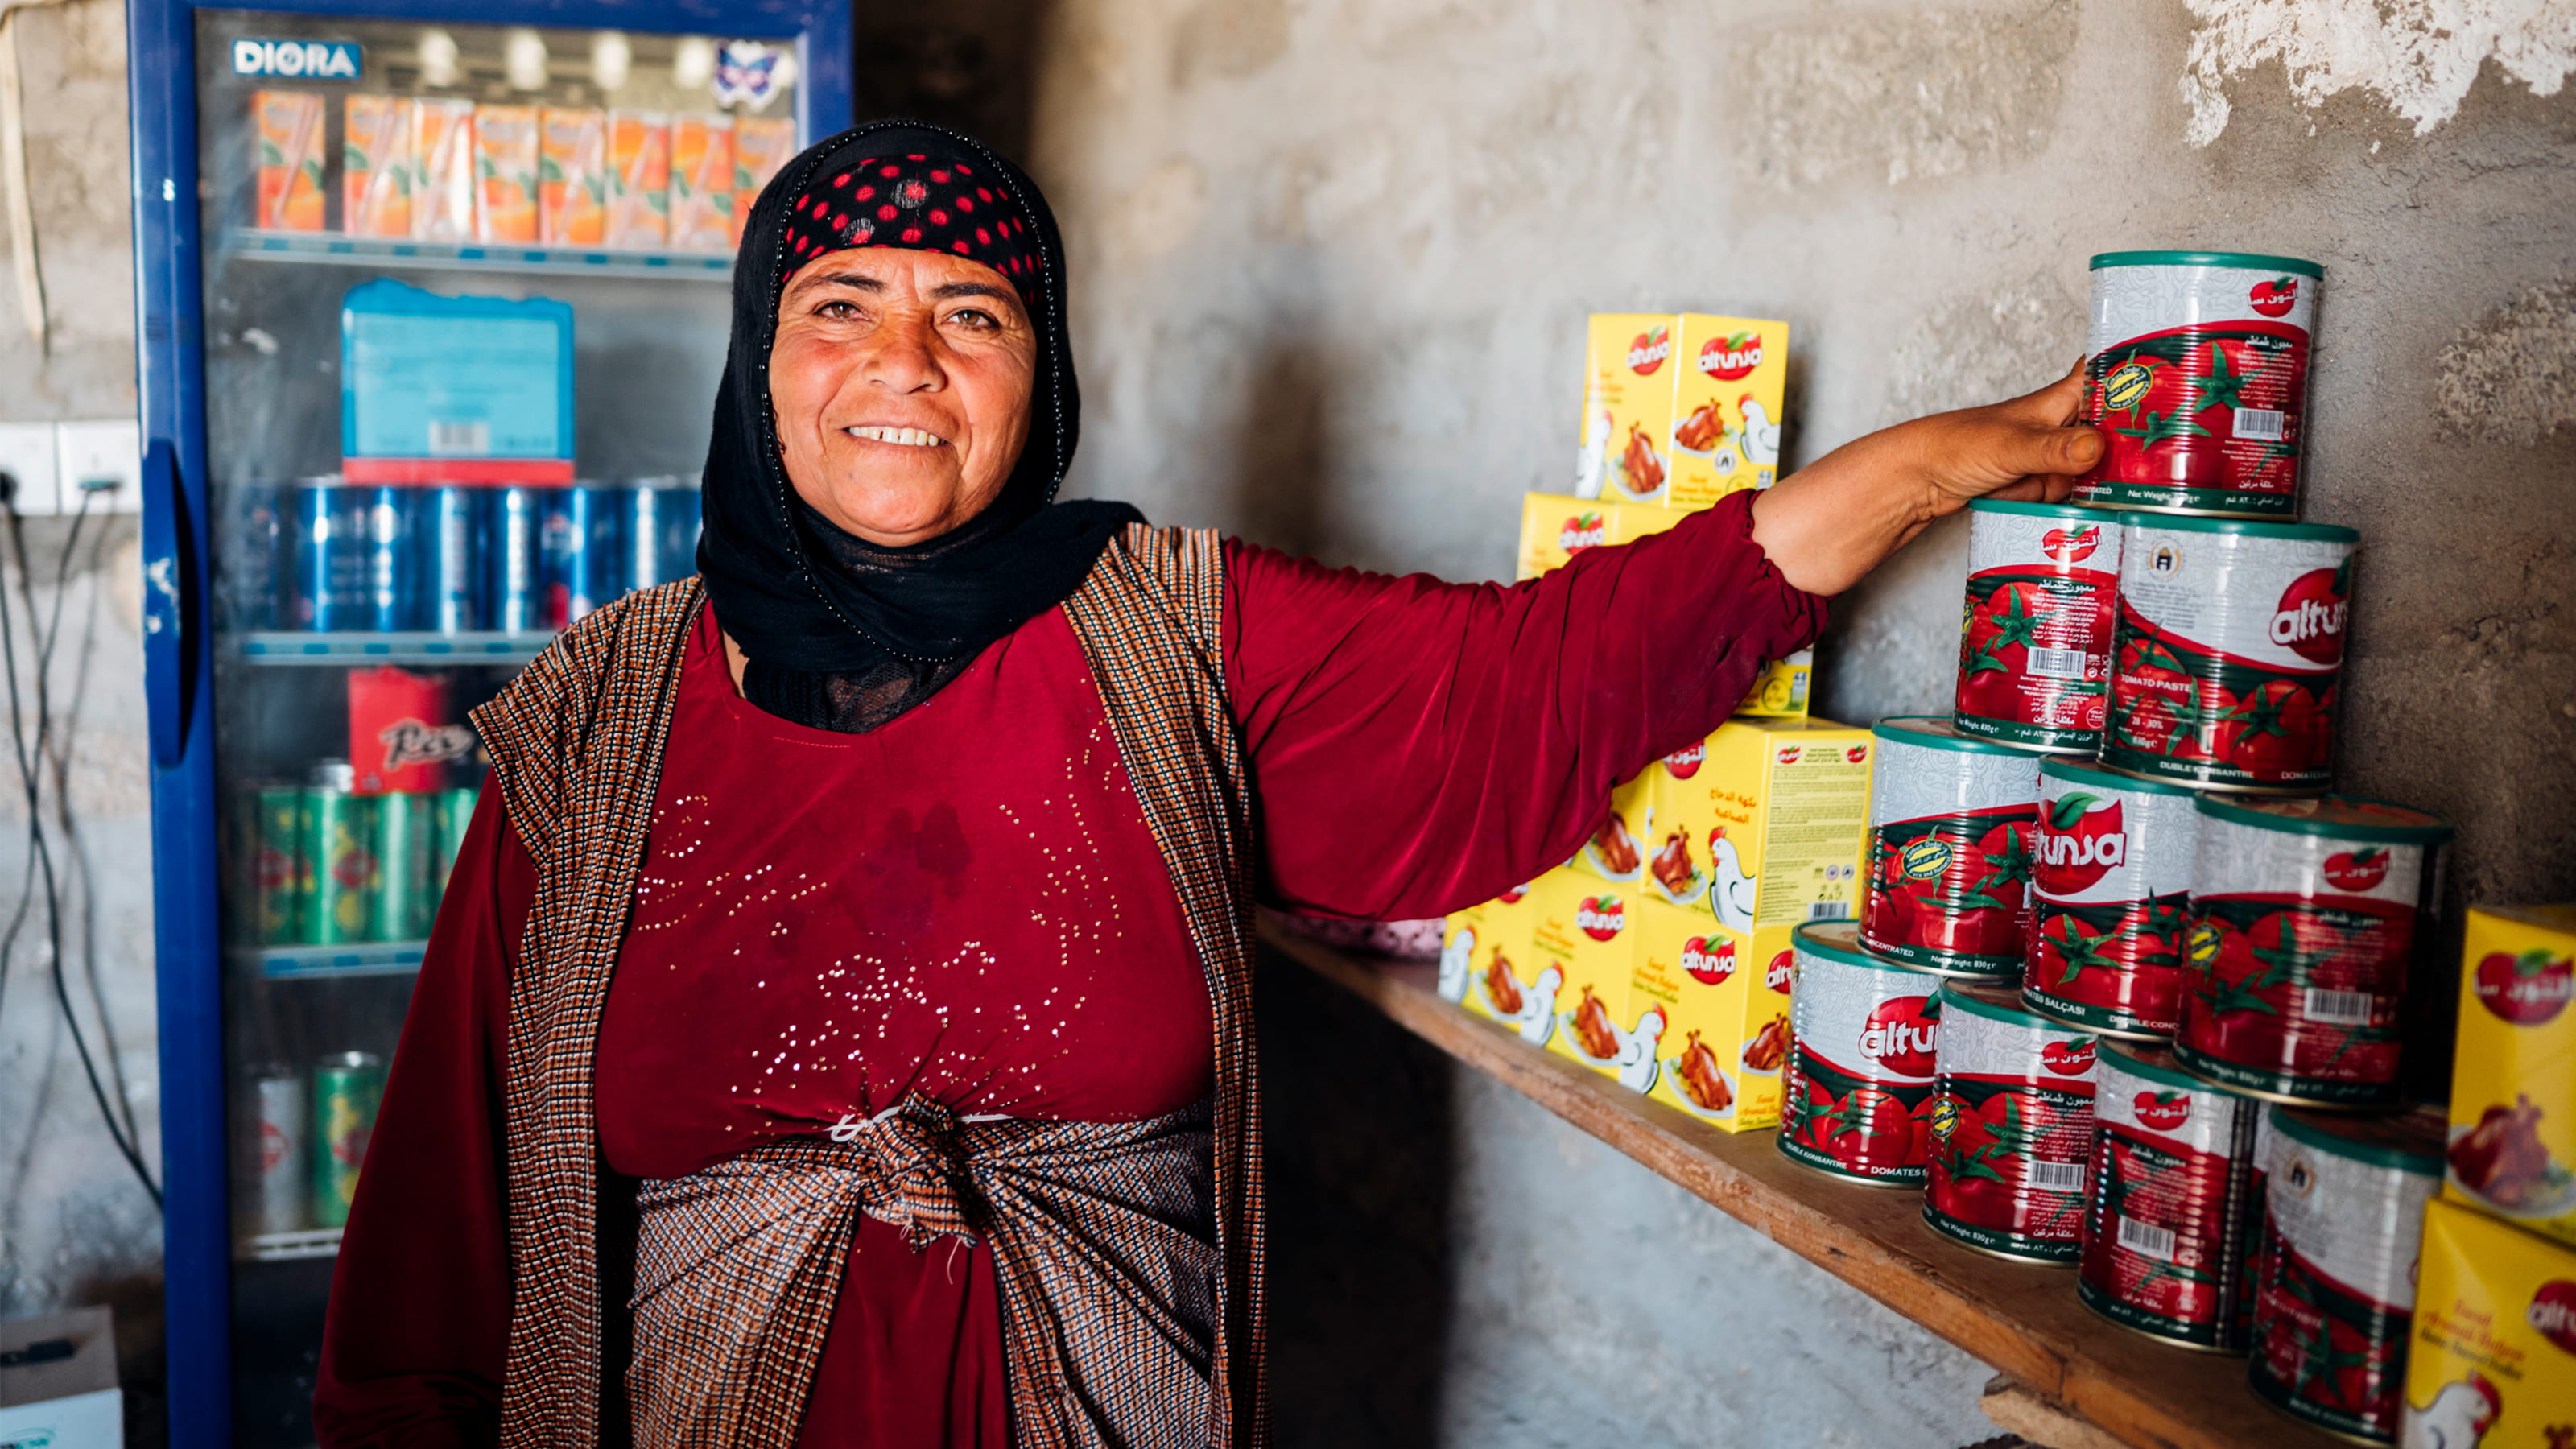 Lady standing in her shop